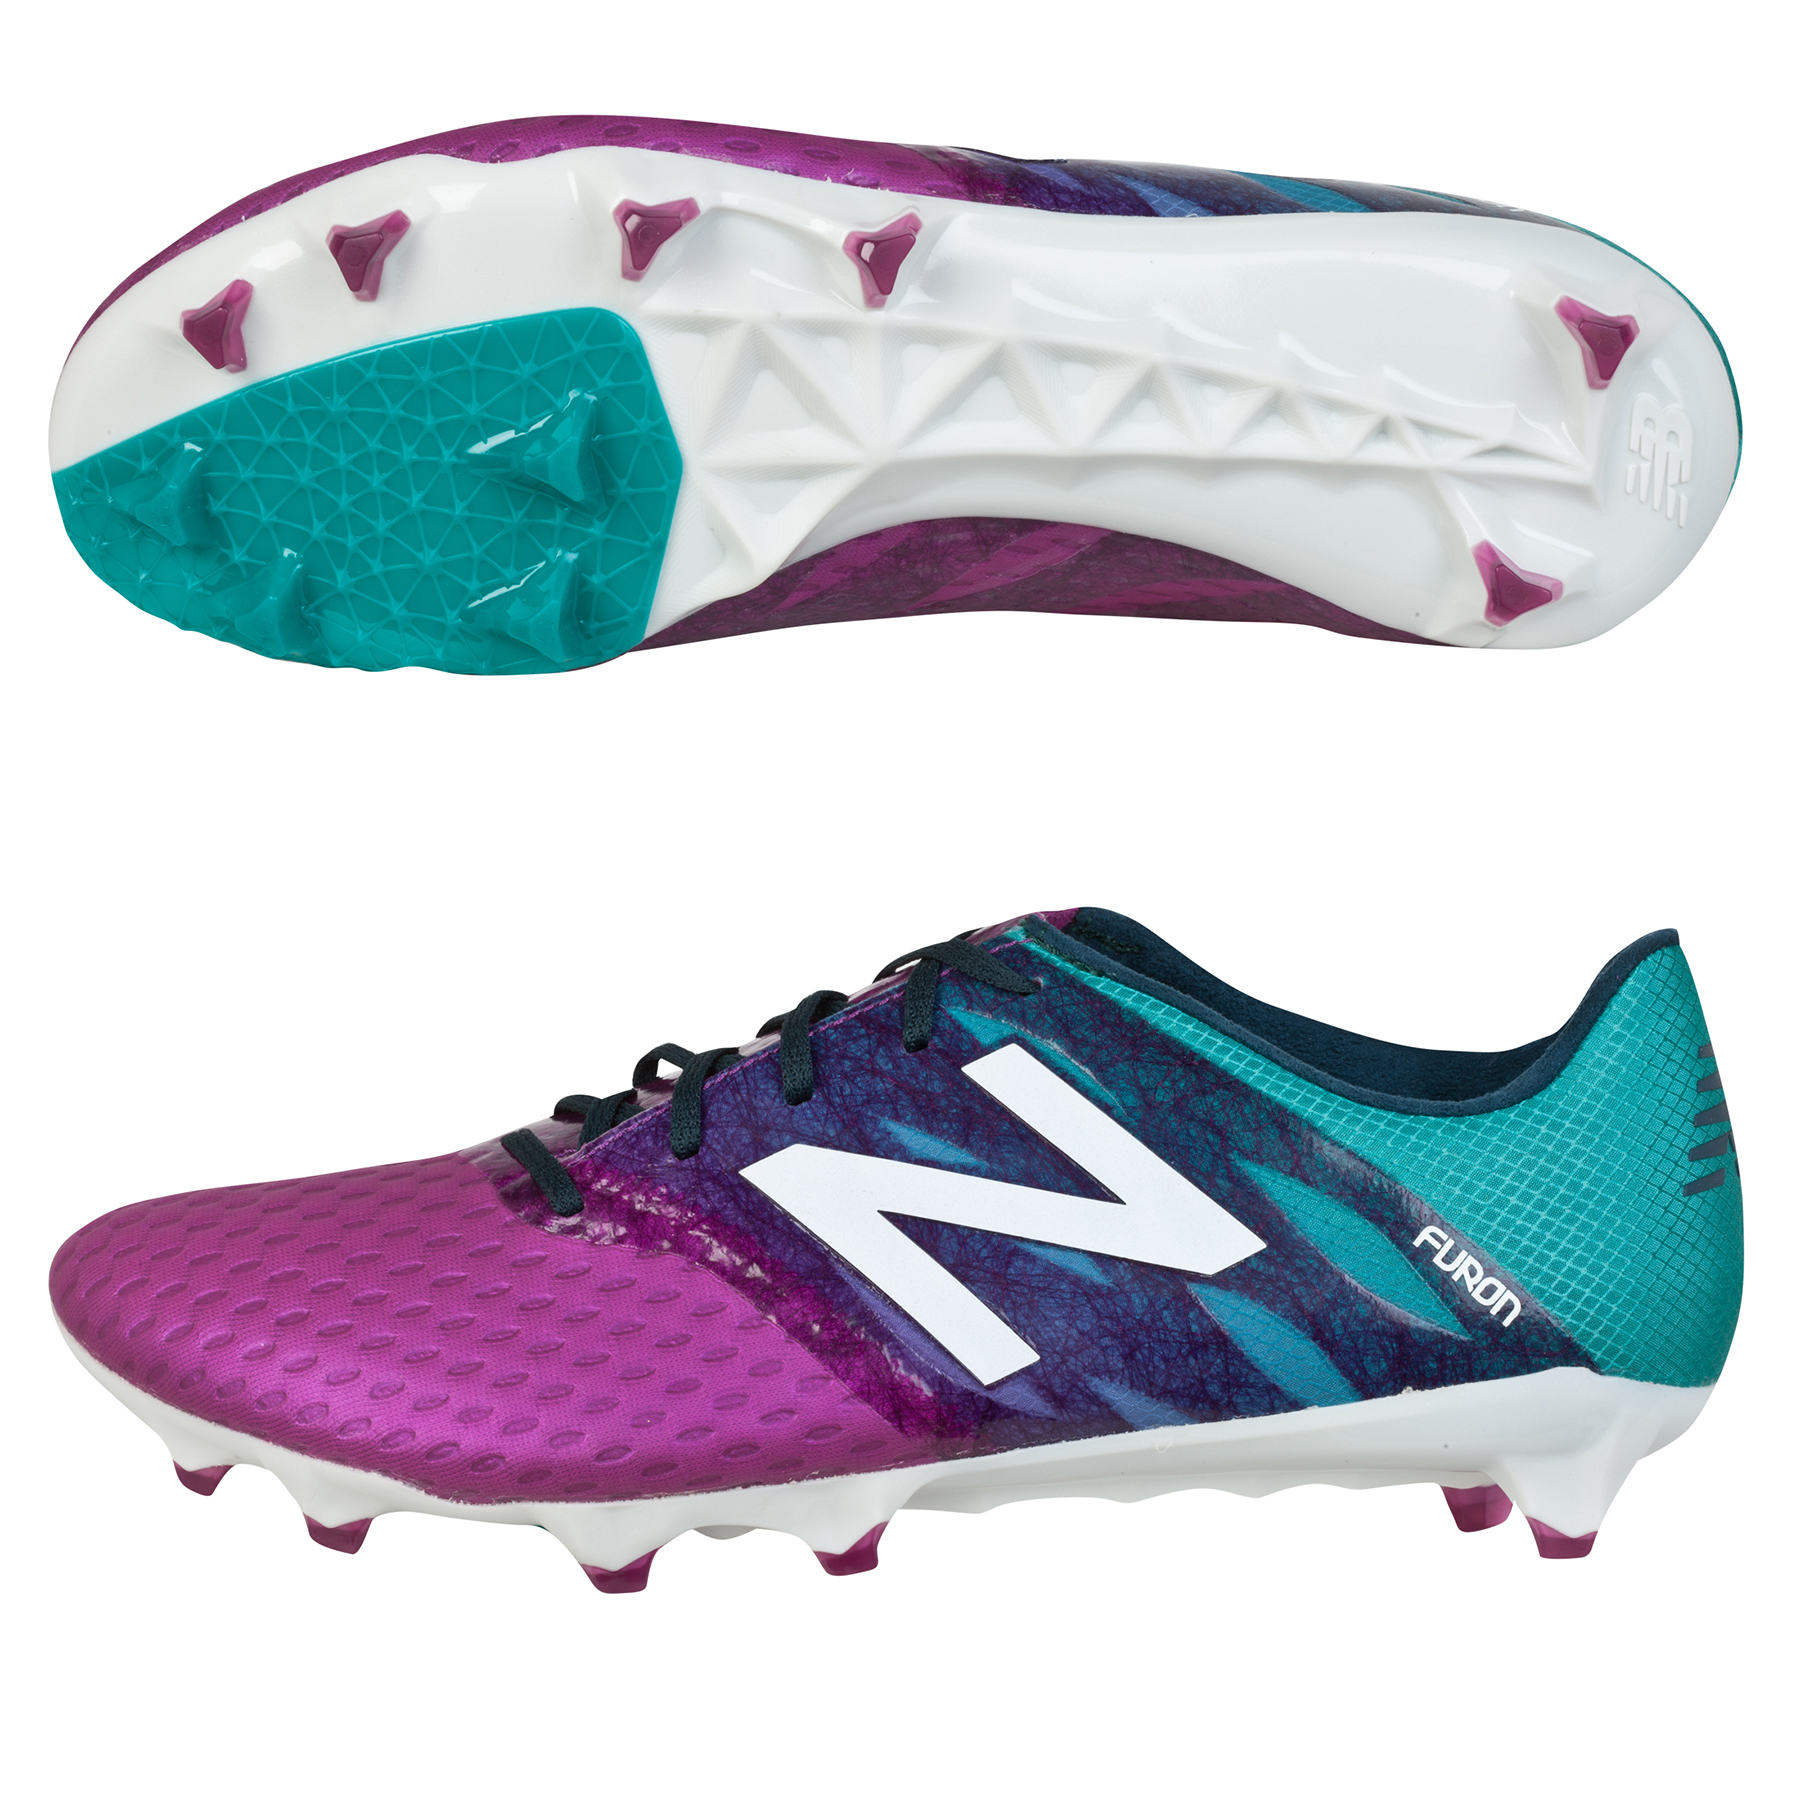 New Balance Furon Pro Firm Ground Football Boots Purple